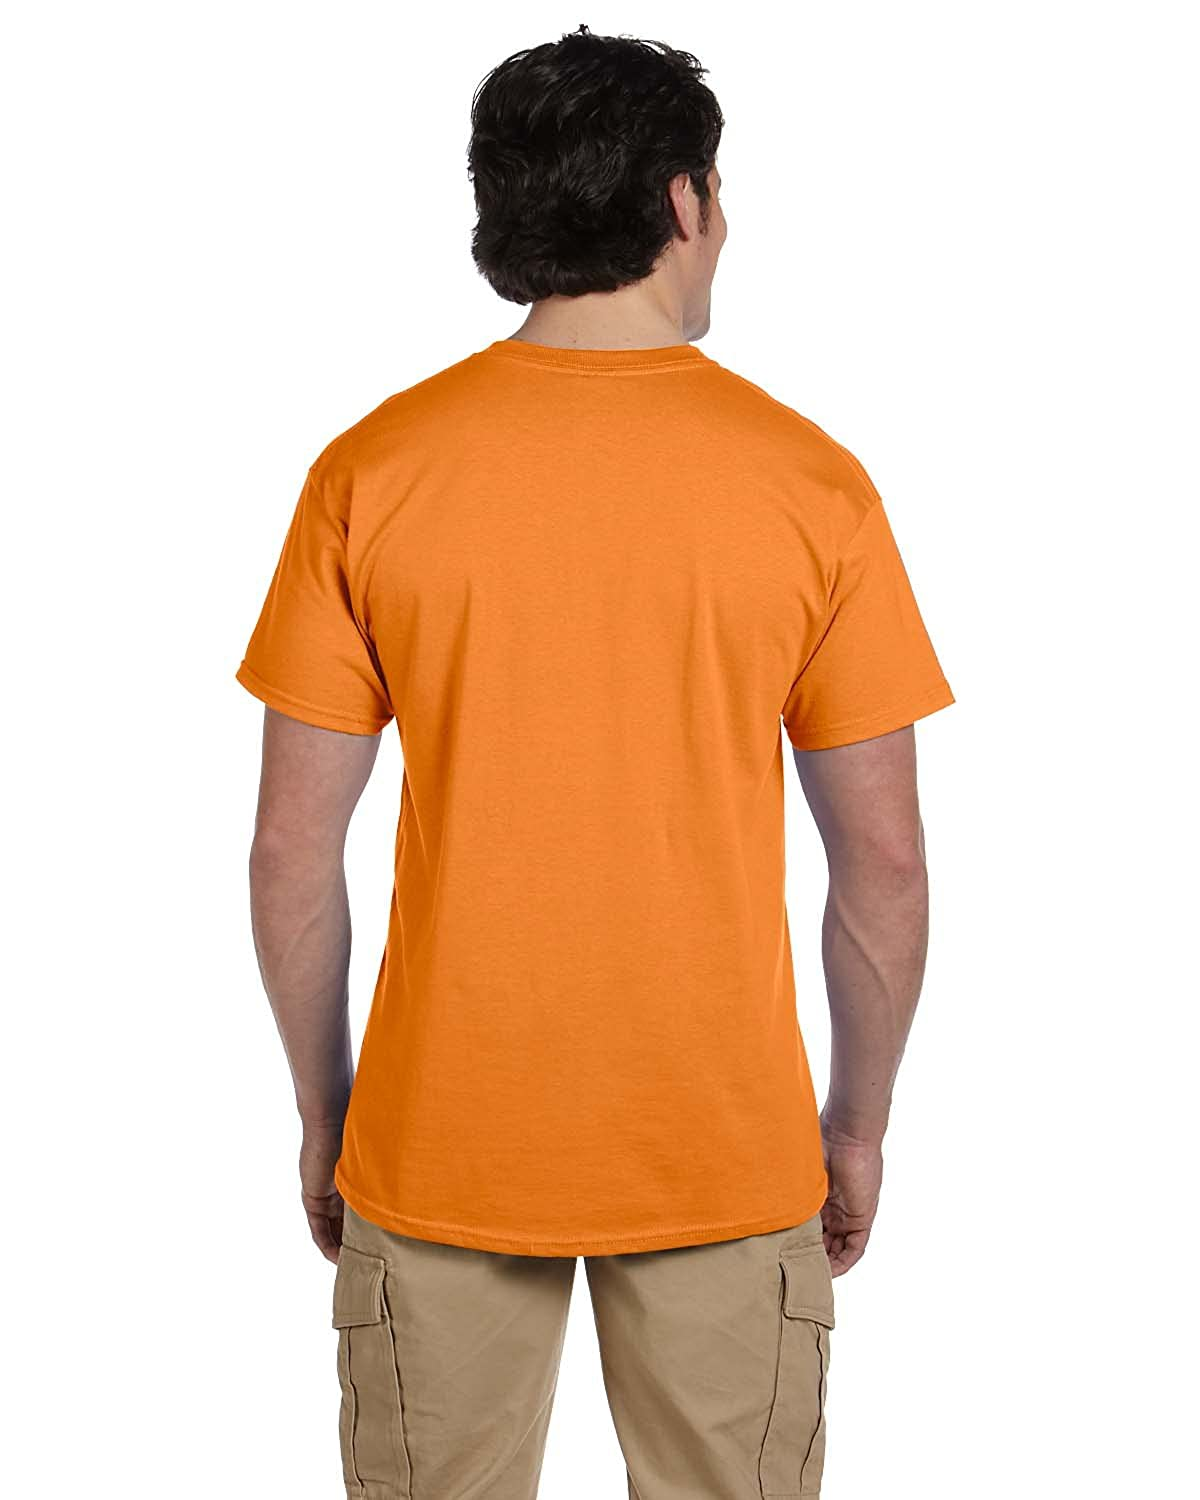 Gildan Mens Seamless Double Needle T-Shirt Tangerine